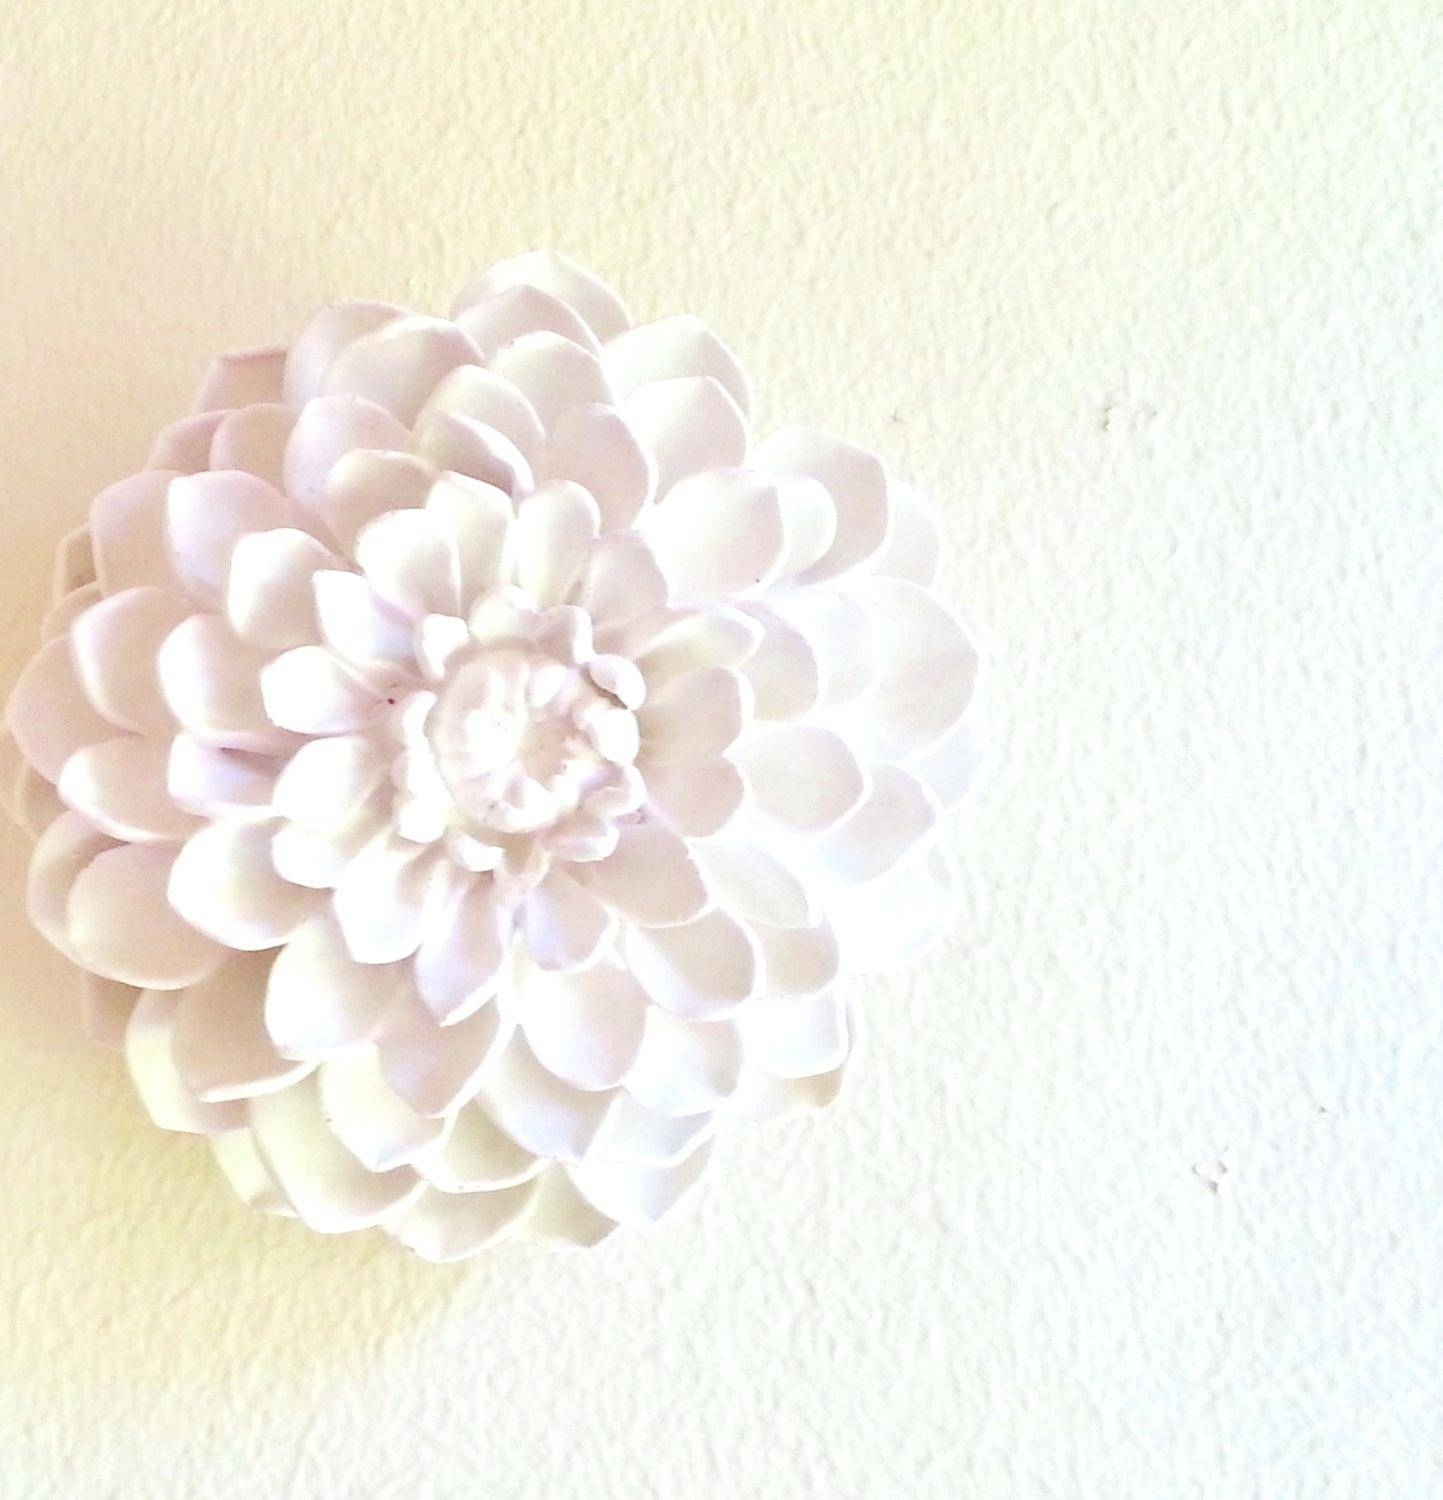 Wall Ideas : White Ceramic Flower Wall Decor Black And White For Latest Ceramic Flower Wall Art (View 28 of 30)